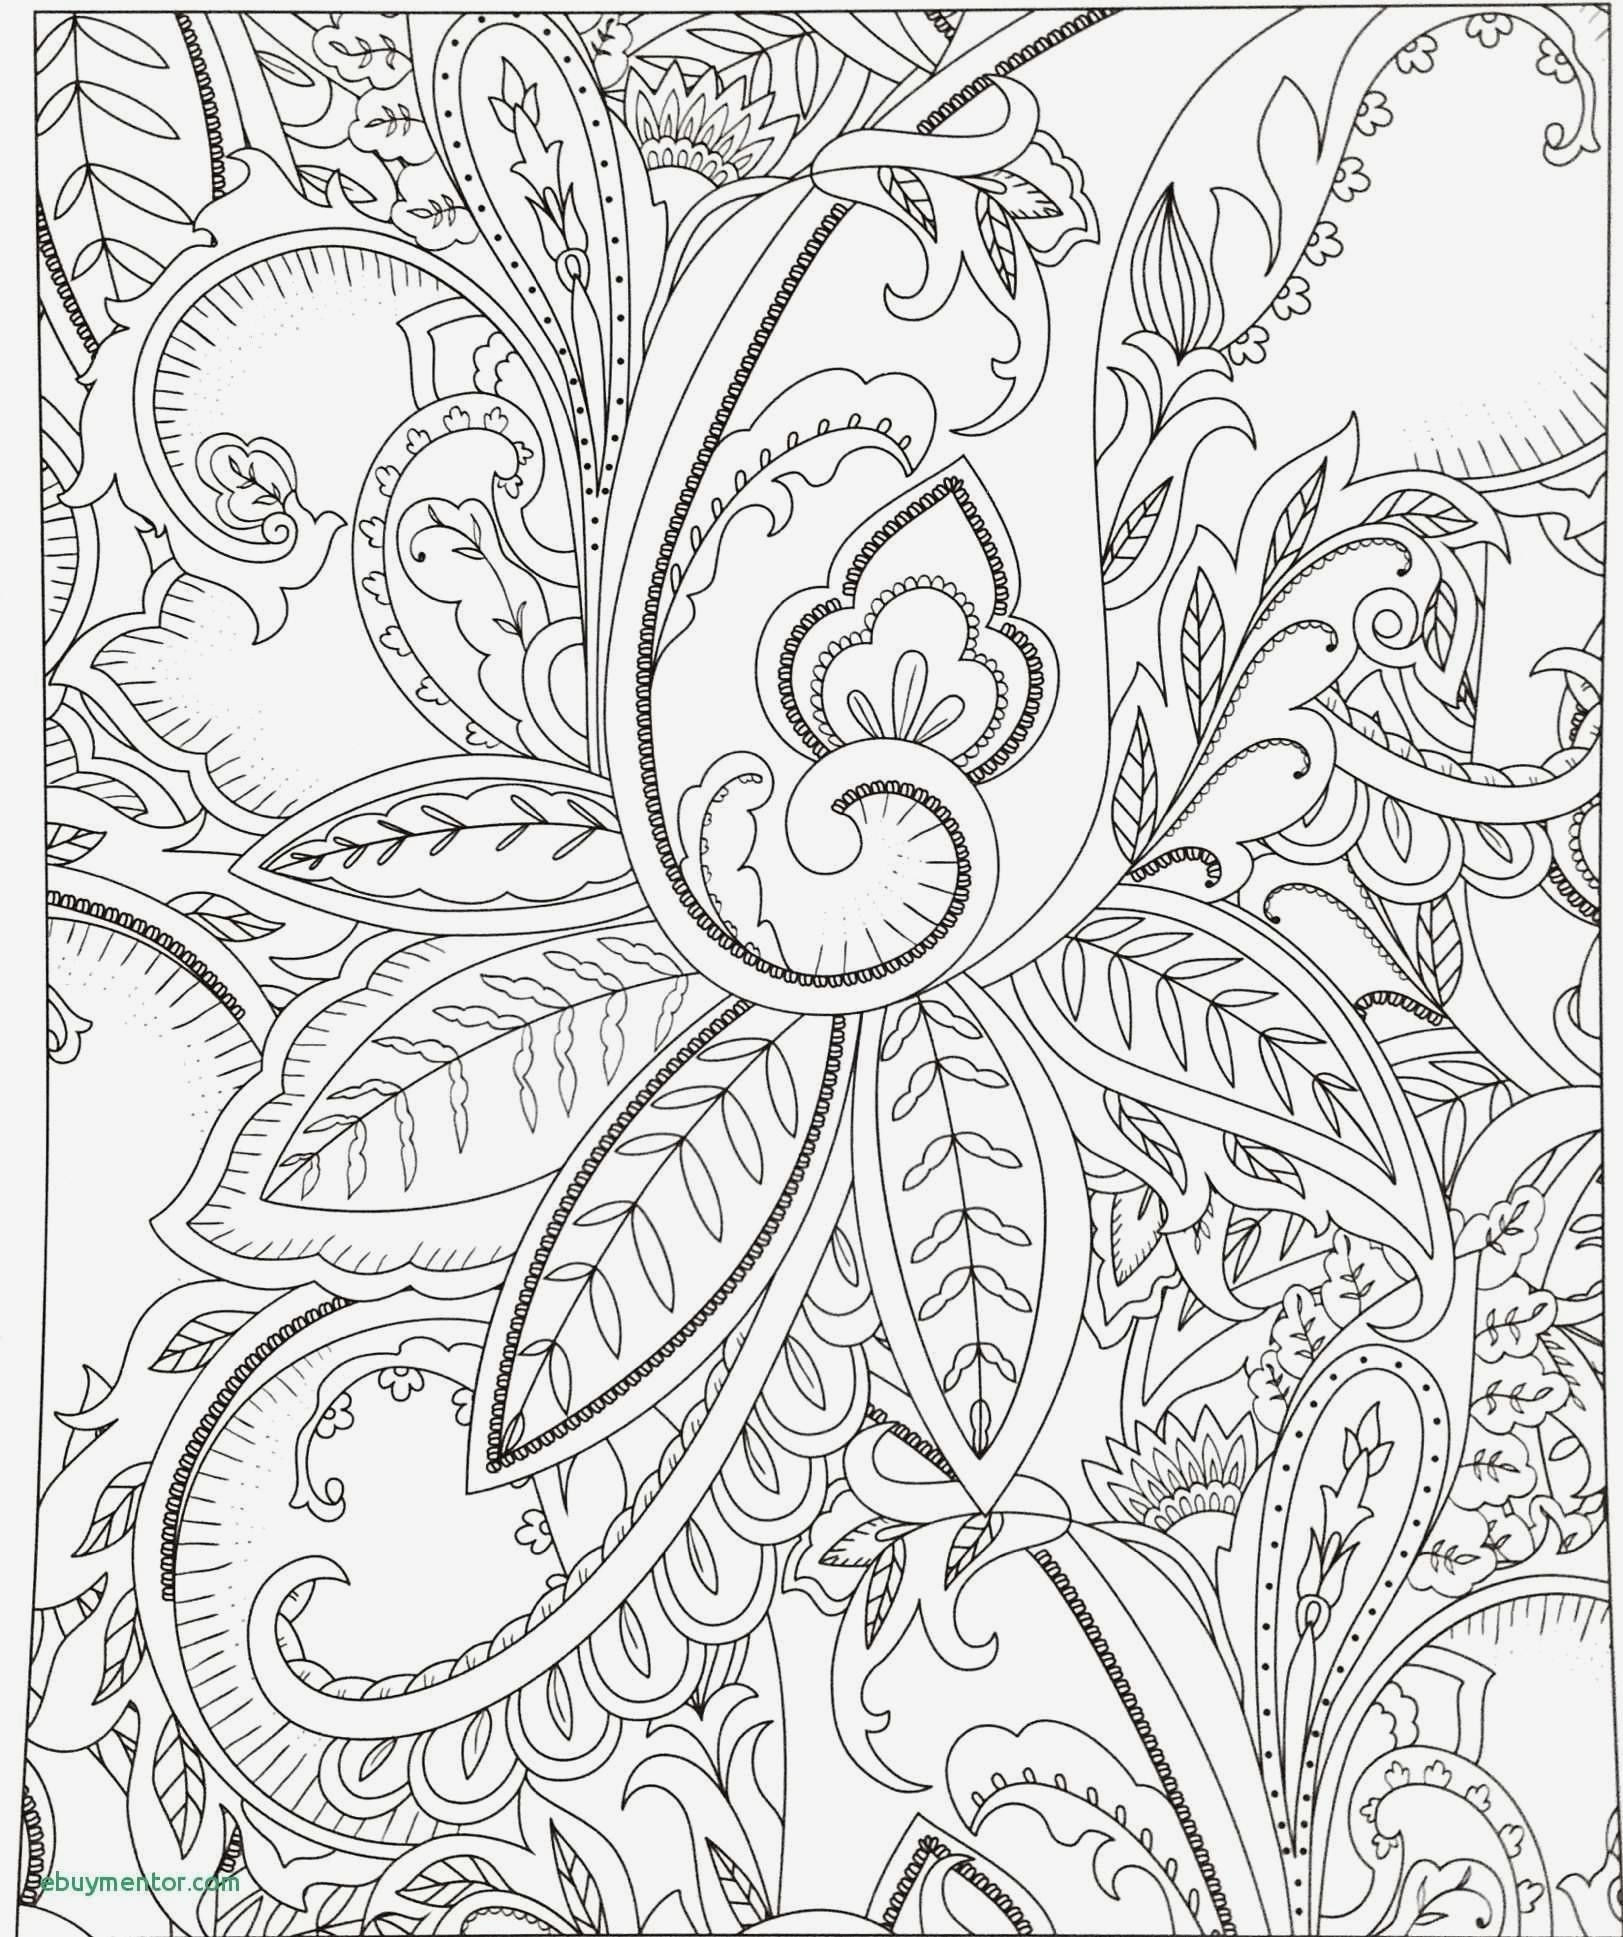 Ausmalbilder U Boot Neu Lovely Mom and Baby Horse Coloring Pages – Kursknews Galerie